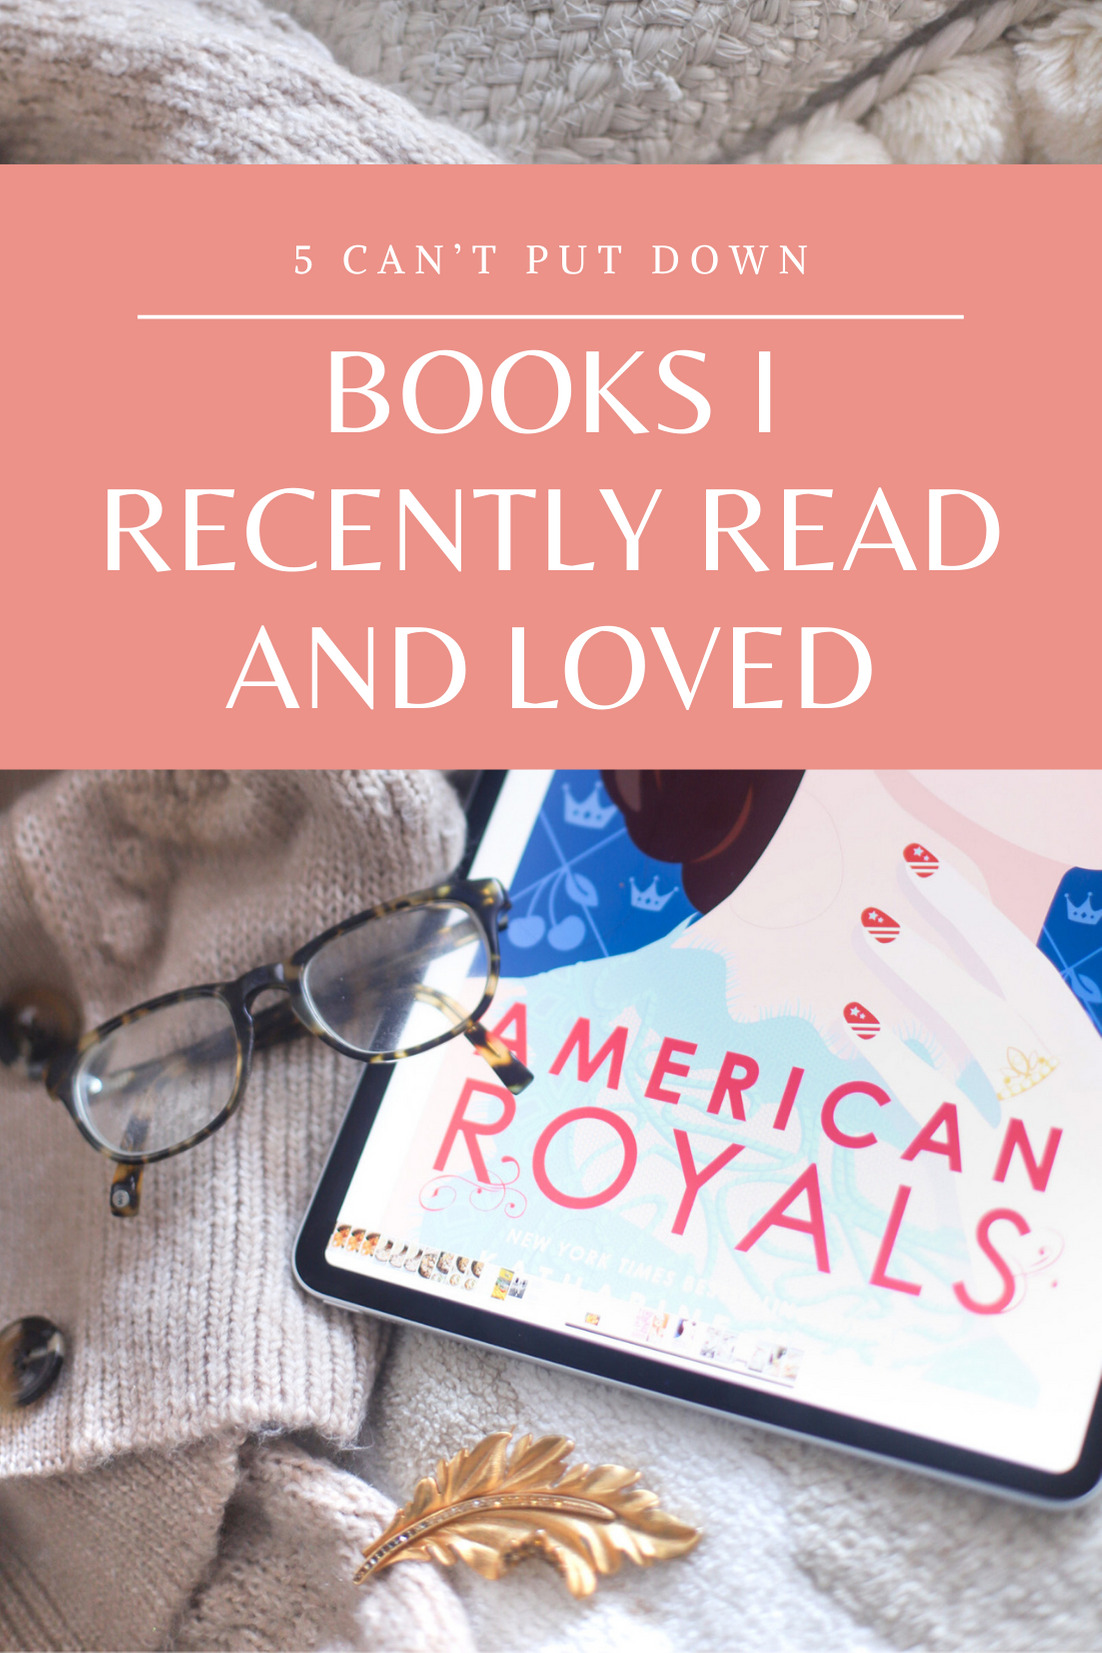 5 Books I Recently Read and Loved - Book Recommendations | @glitterinclexi | GLITTERINC.COM